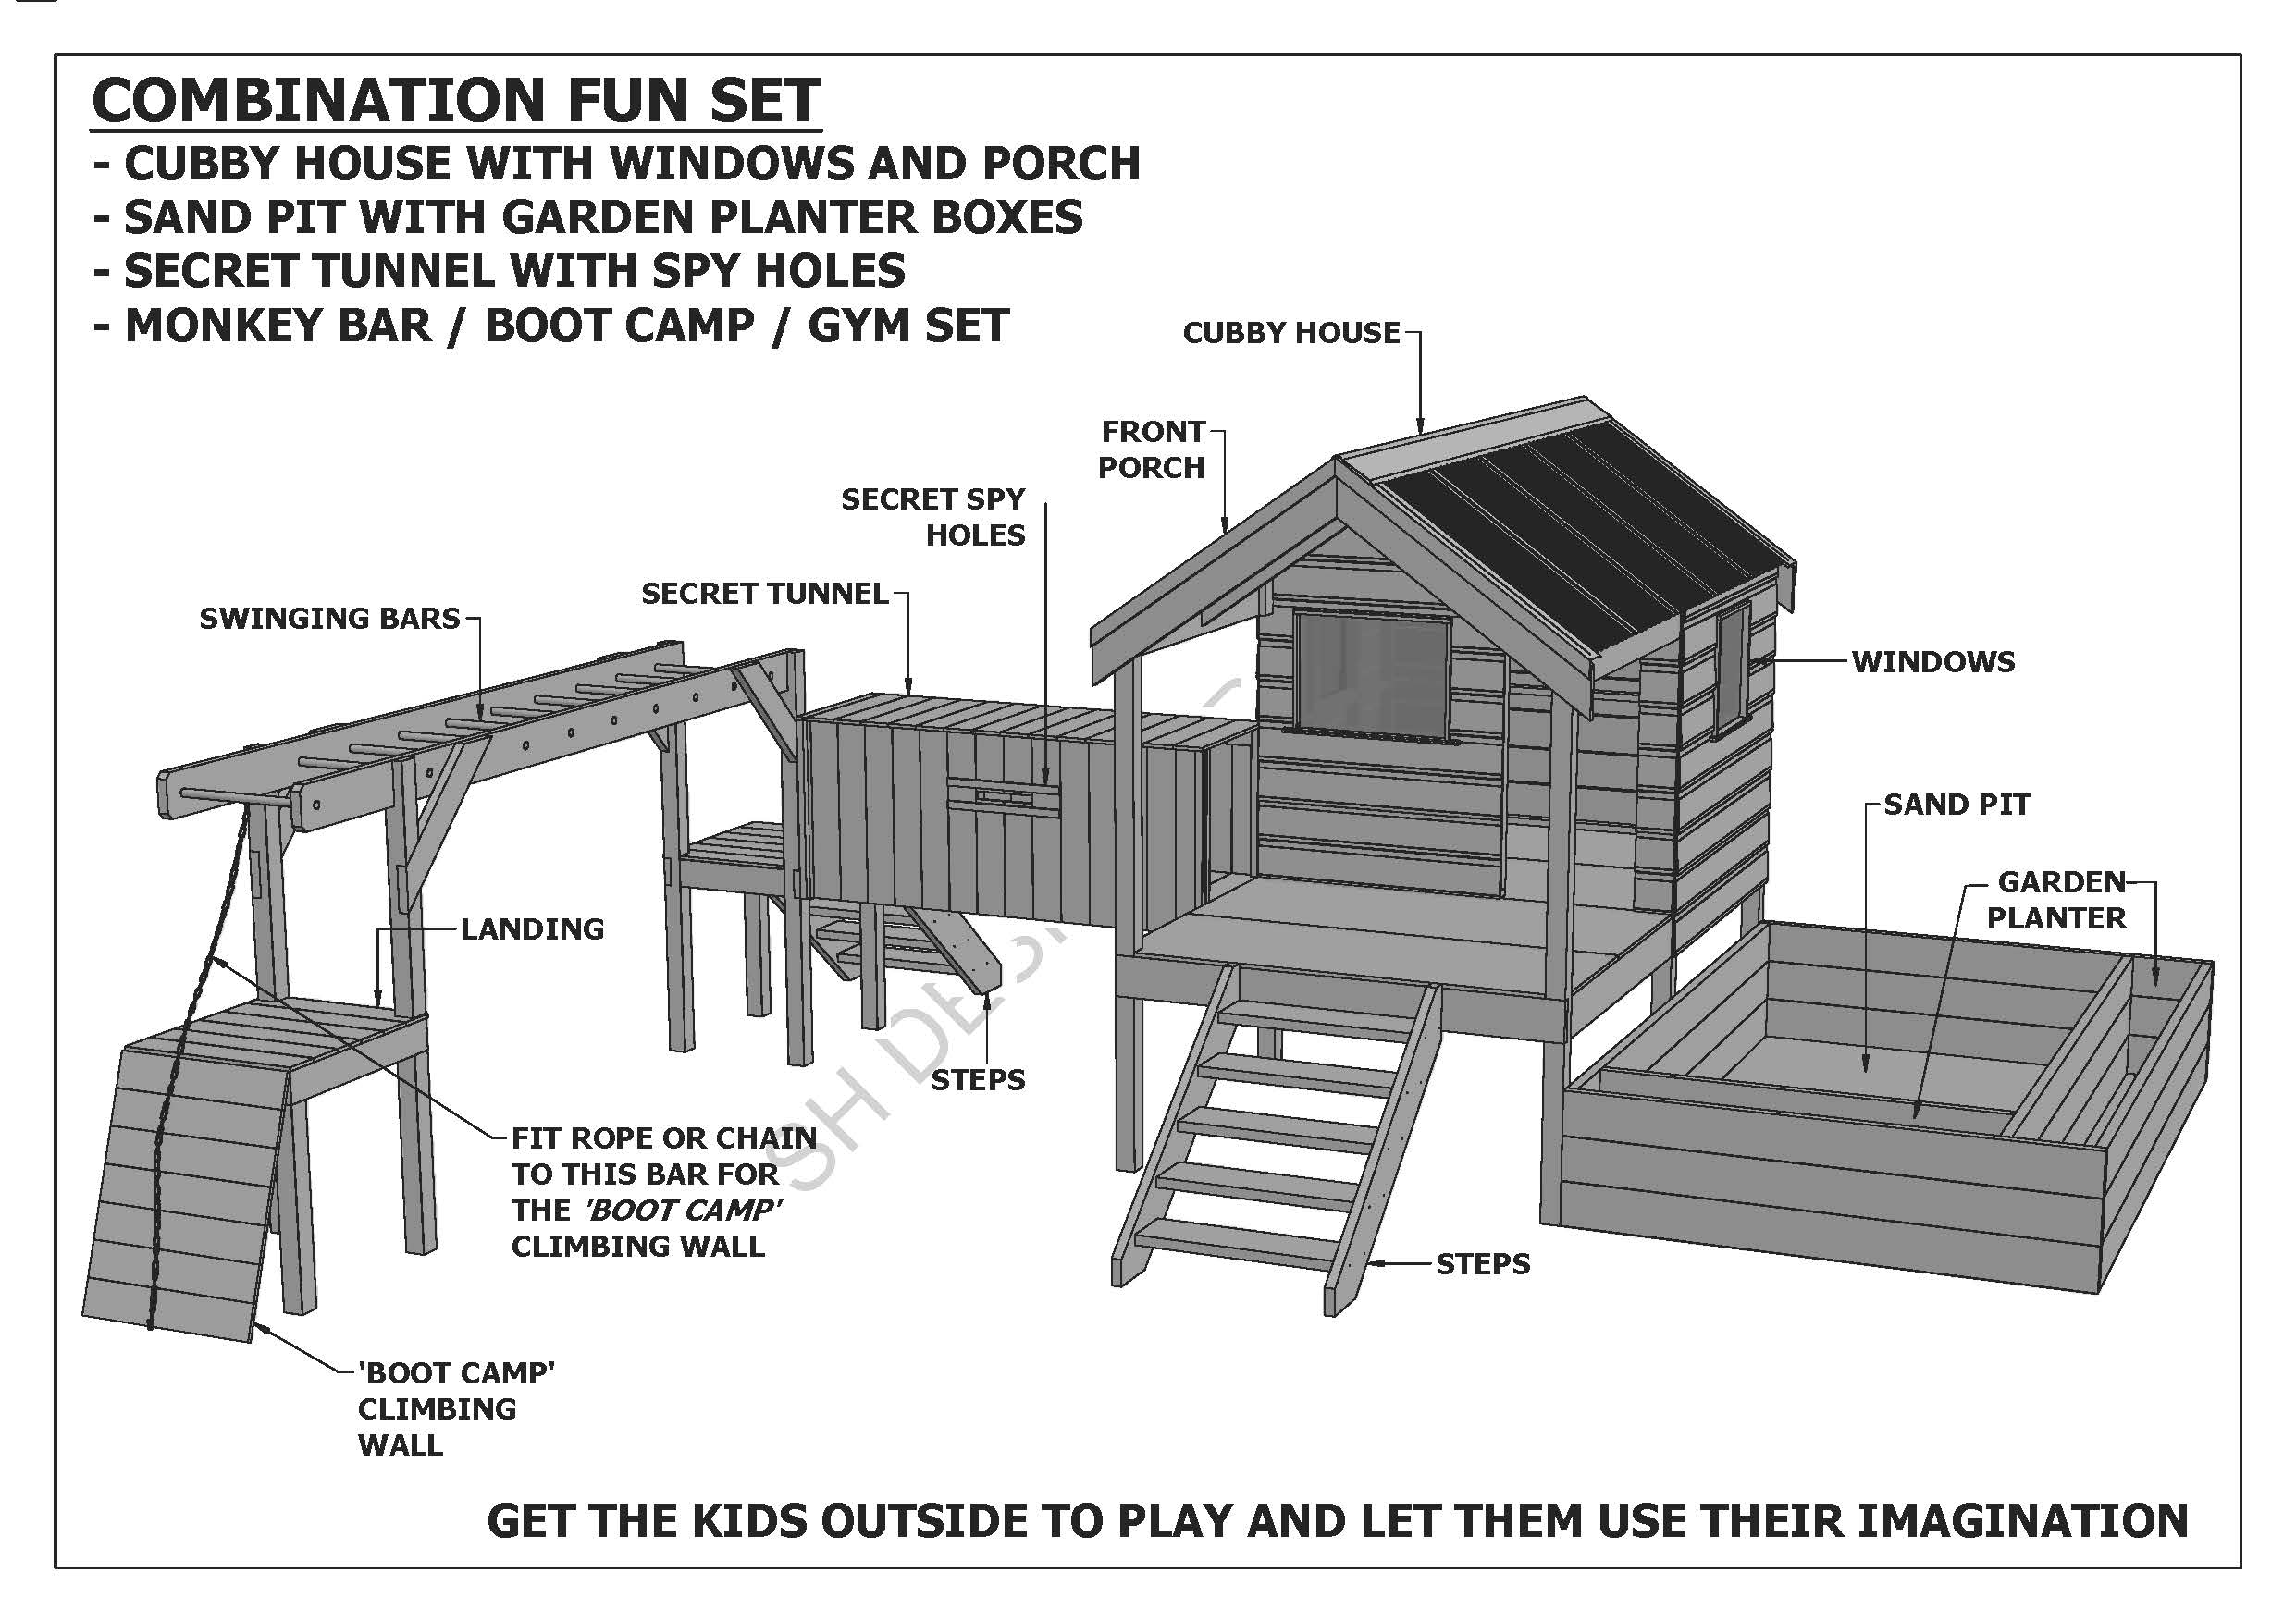 COMBO TUNNEL Building Plans V1 PLAY GYM CUBBY PLAY HOUSE ... on house with two kitchens, house with an office, house with game room, house with steam room, house with an elevator, house with 2 pools, house with party room, house with dance studio, house with pool tables, house with shops, house with table tennis, house with beauty salon, house with indoor pool, house with tennis courts, house with swimming pool, house with solarium, house with weight room,